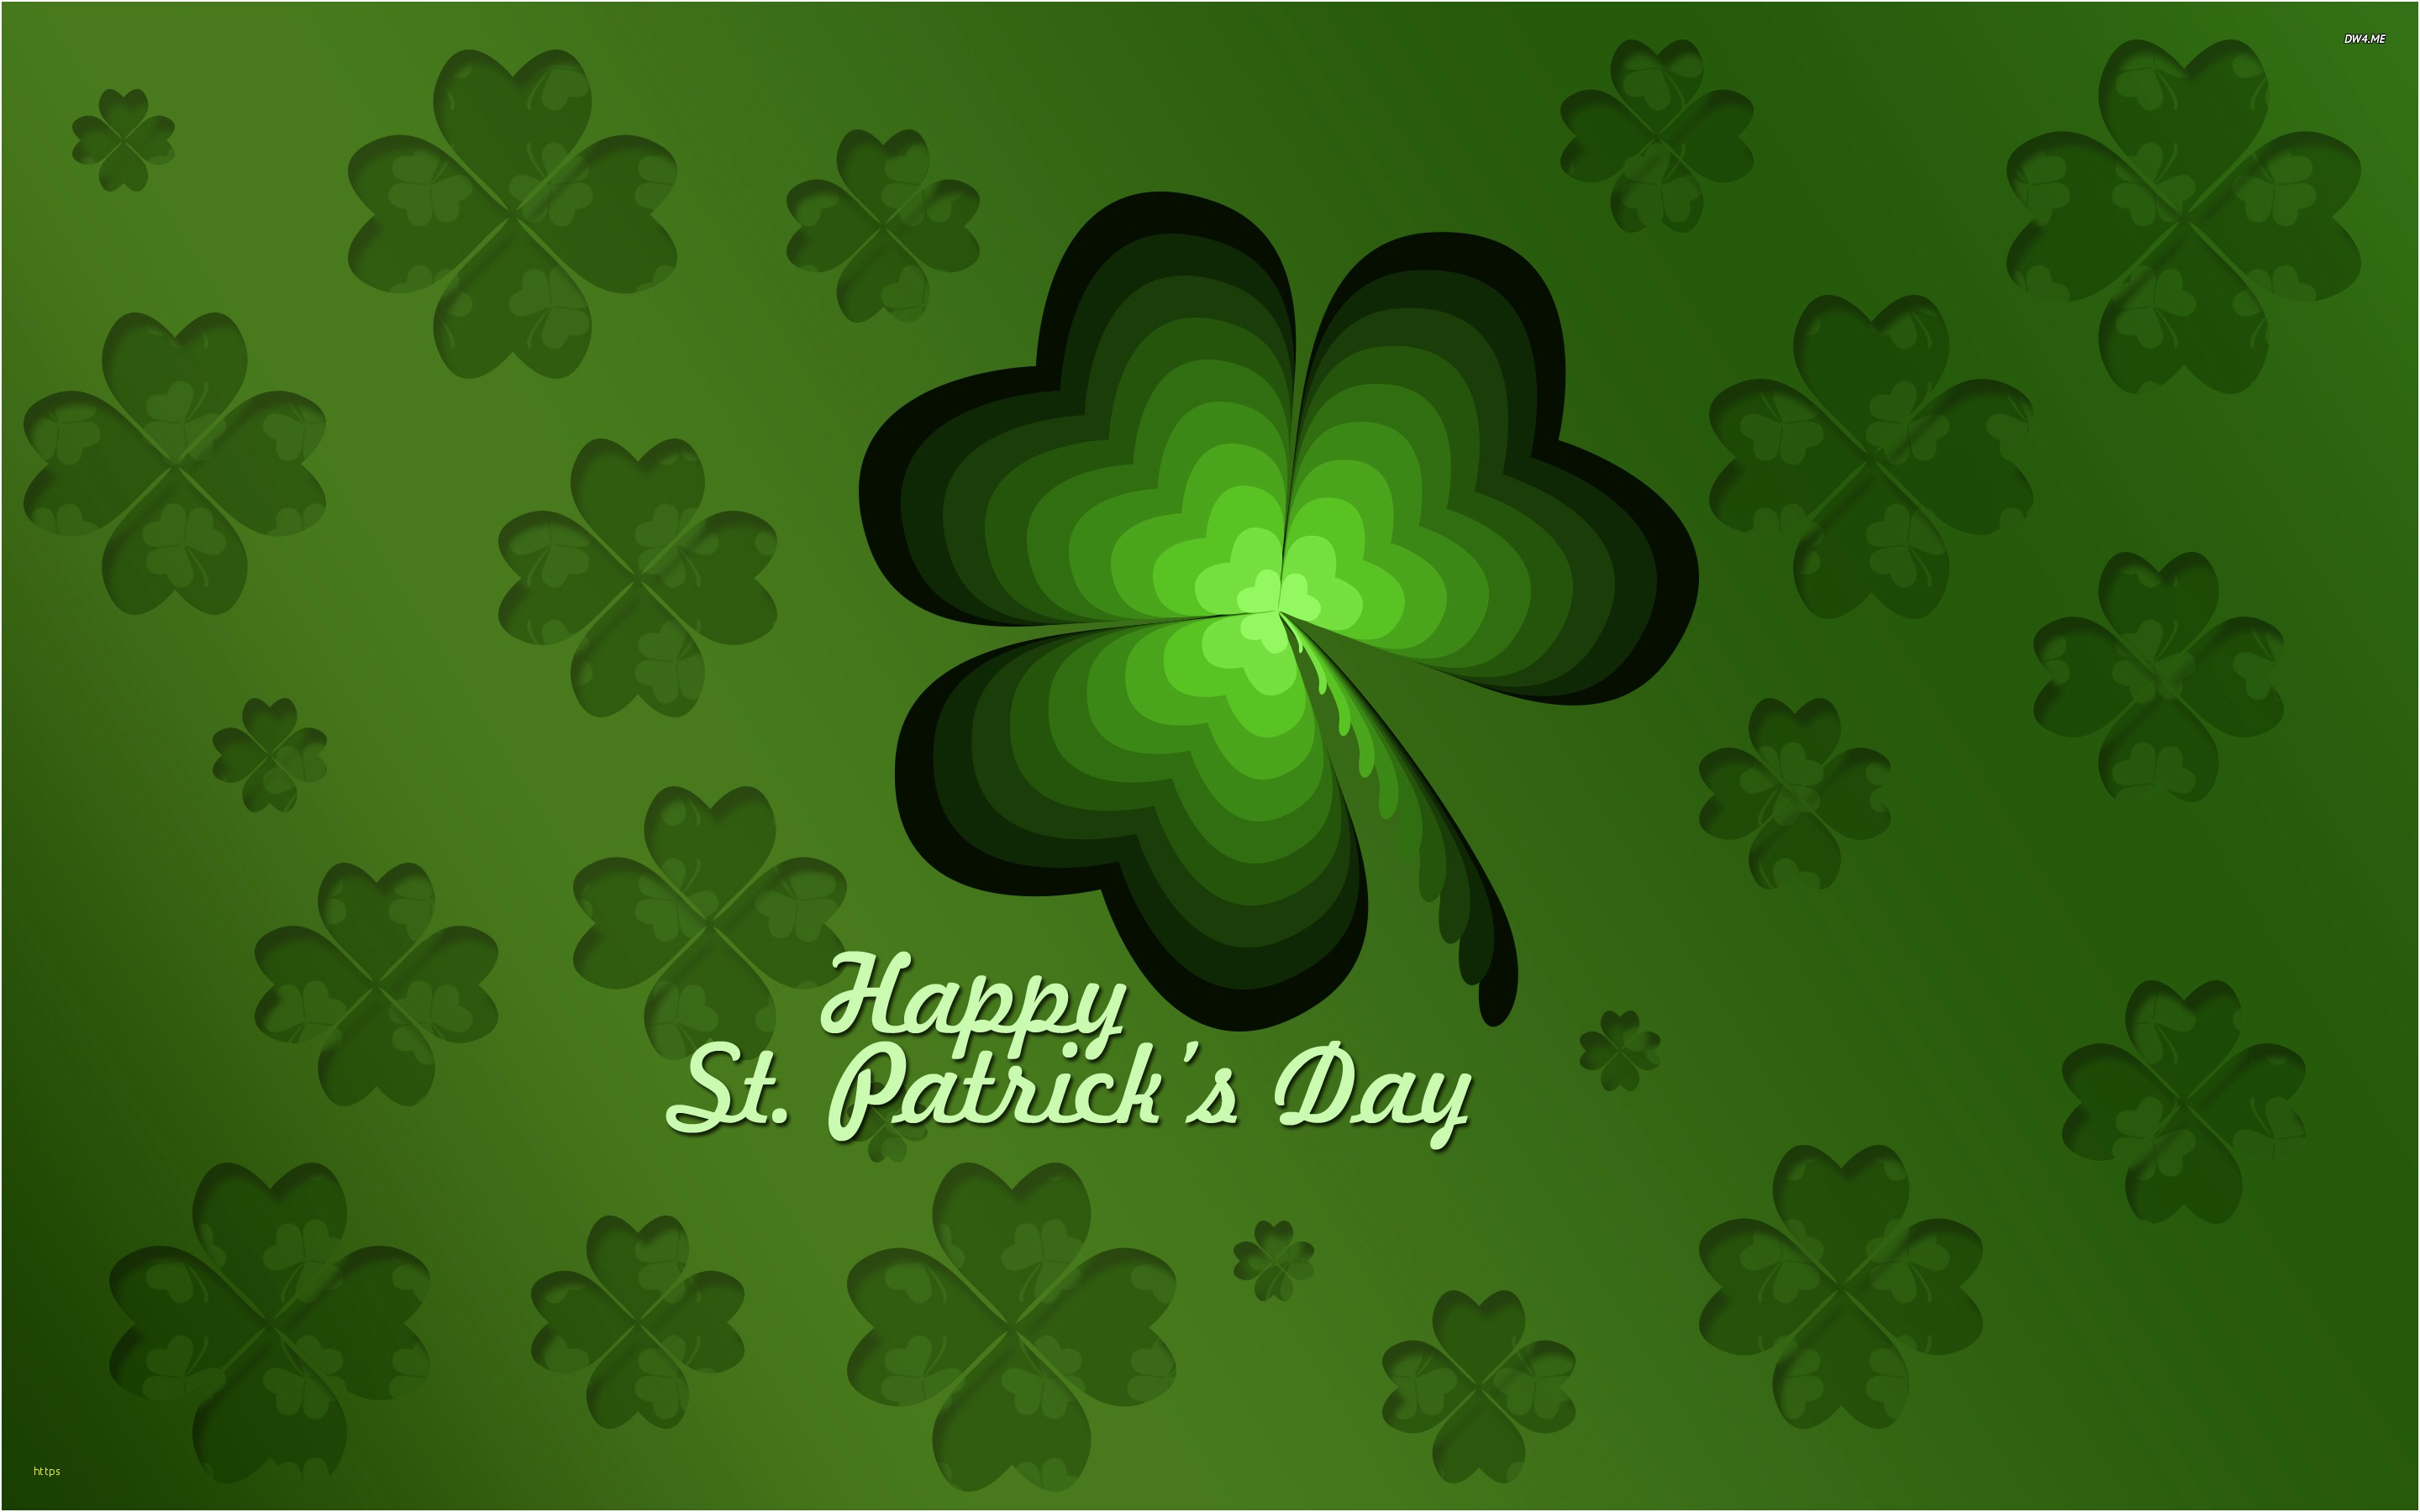 St Patricks Day Wallpaper Awesome St Patrick S Day St